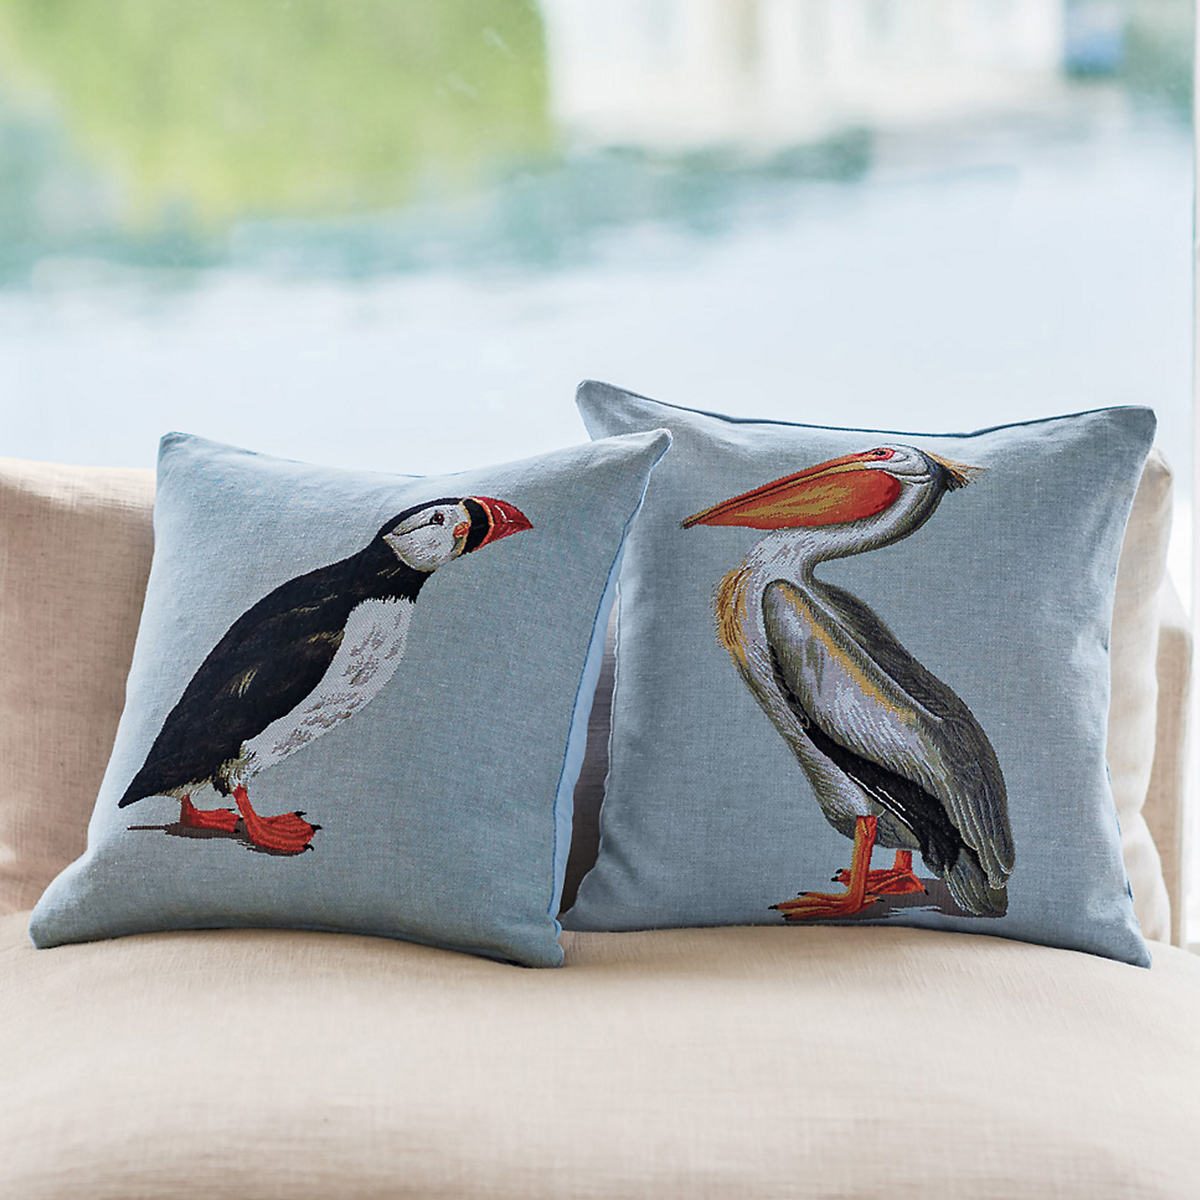 Puffin & Pelican Tapestry Pillows